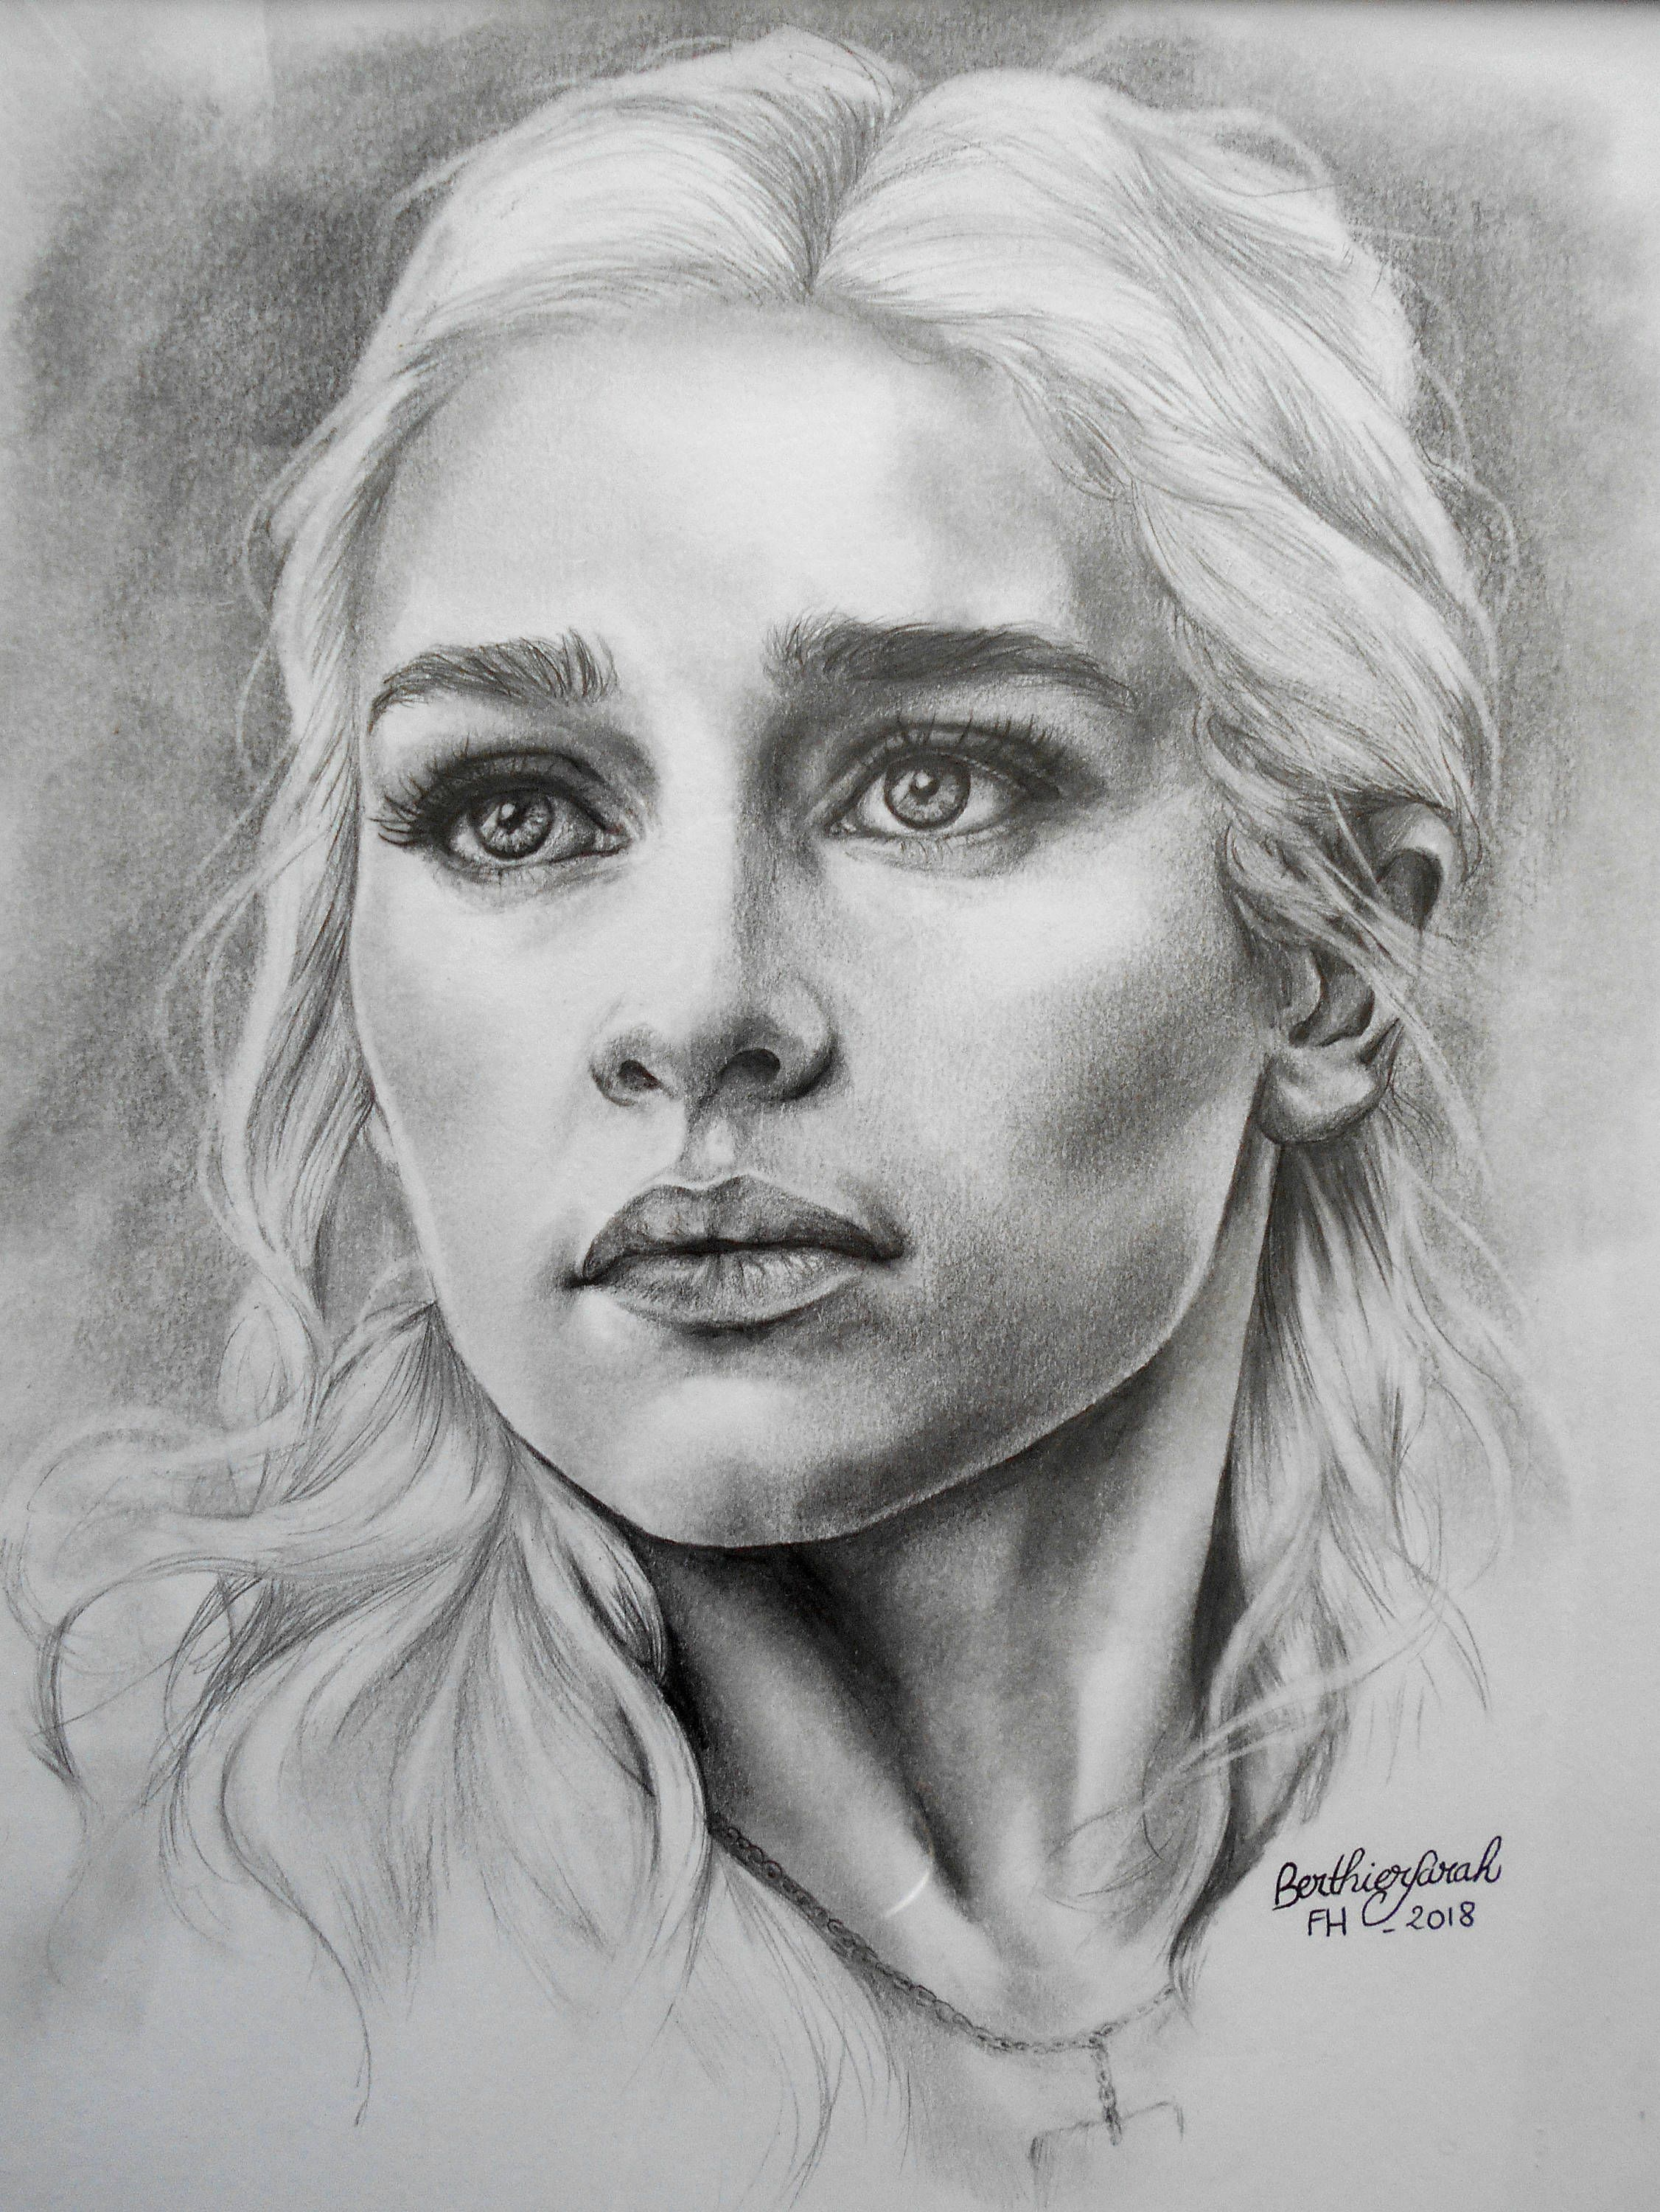 dessin daenerys targaryen game of thrones m re des dragons noir et blanc vendu avec. Black Bedroom Furniture Sets. Home Design Ideas